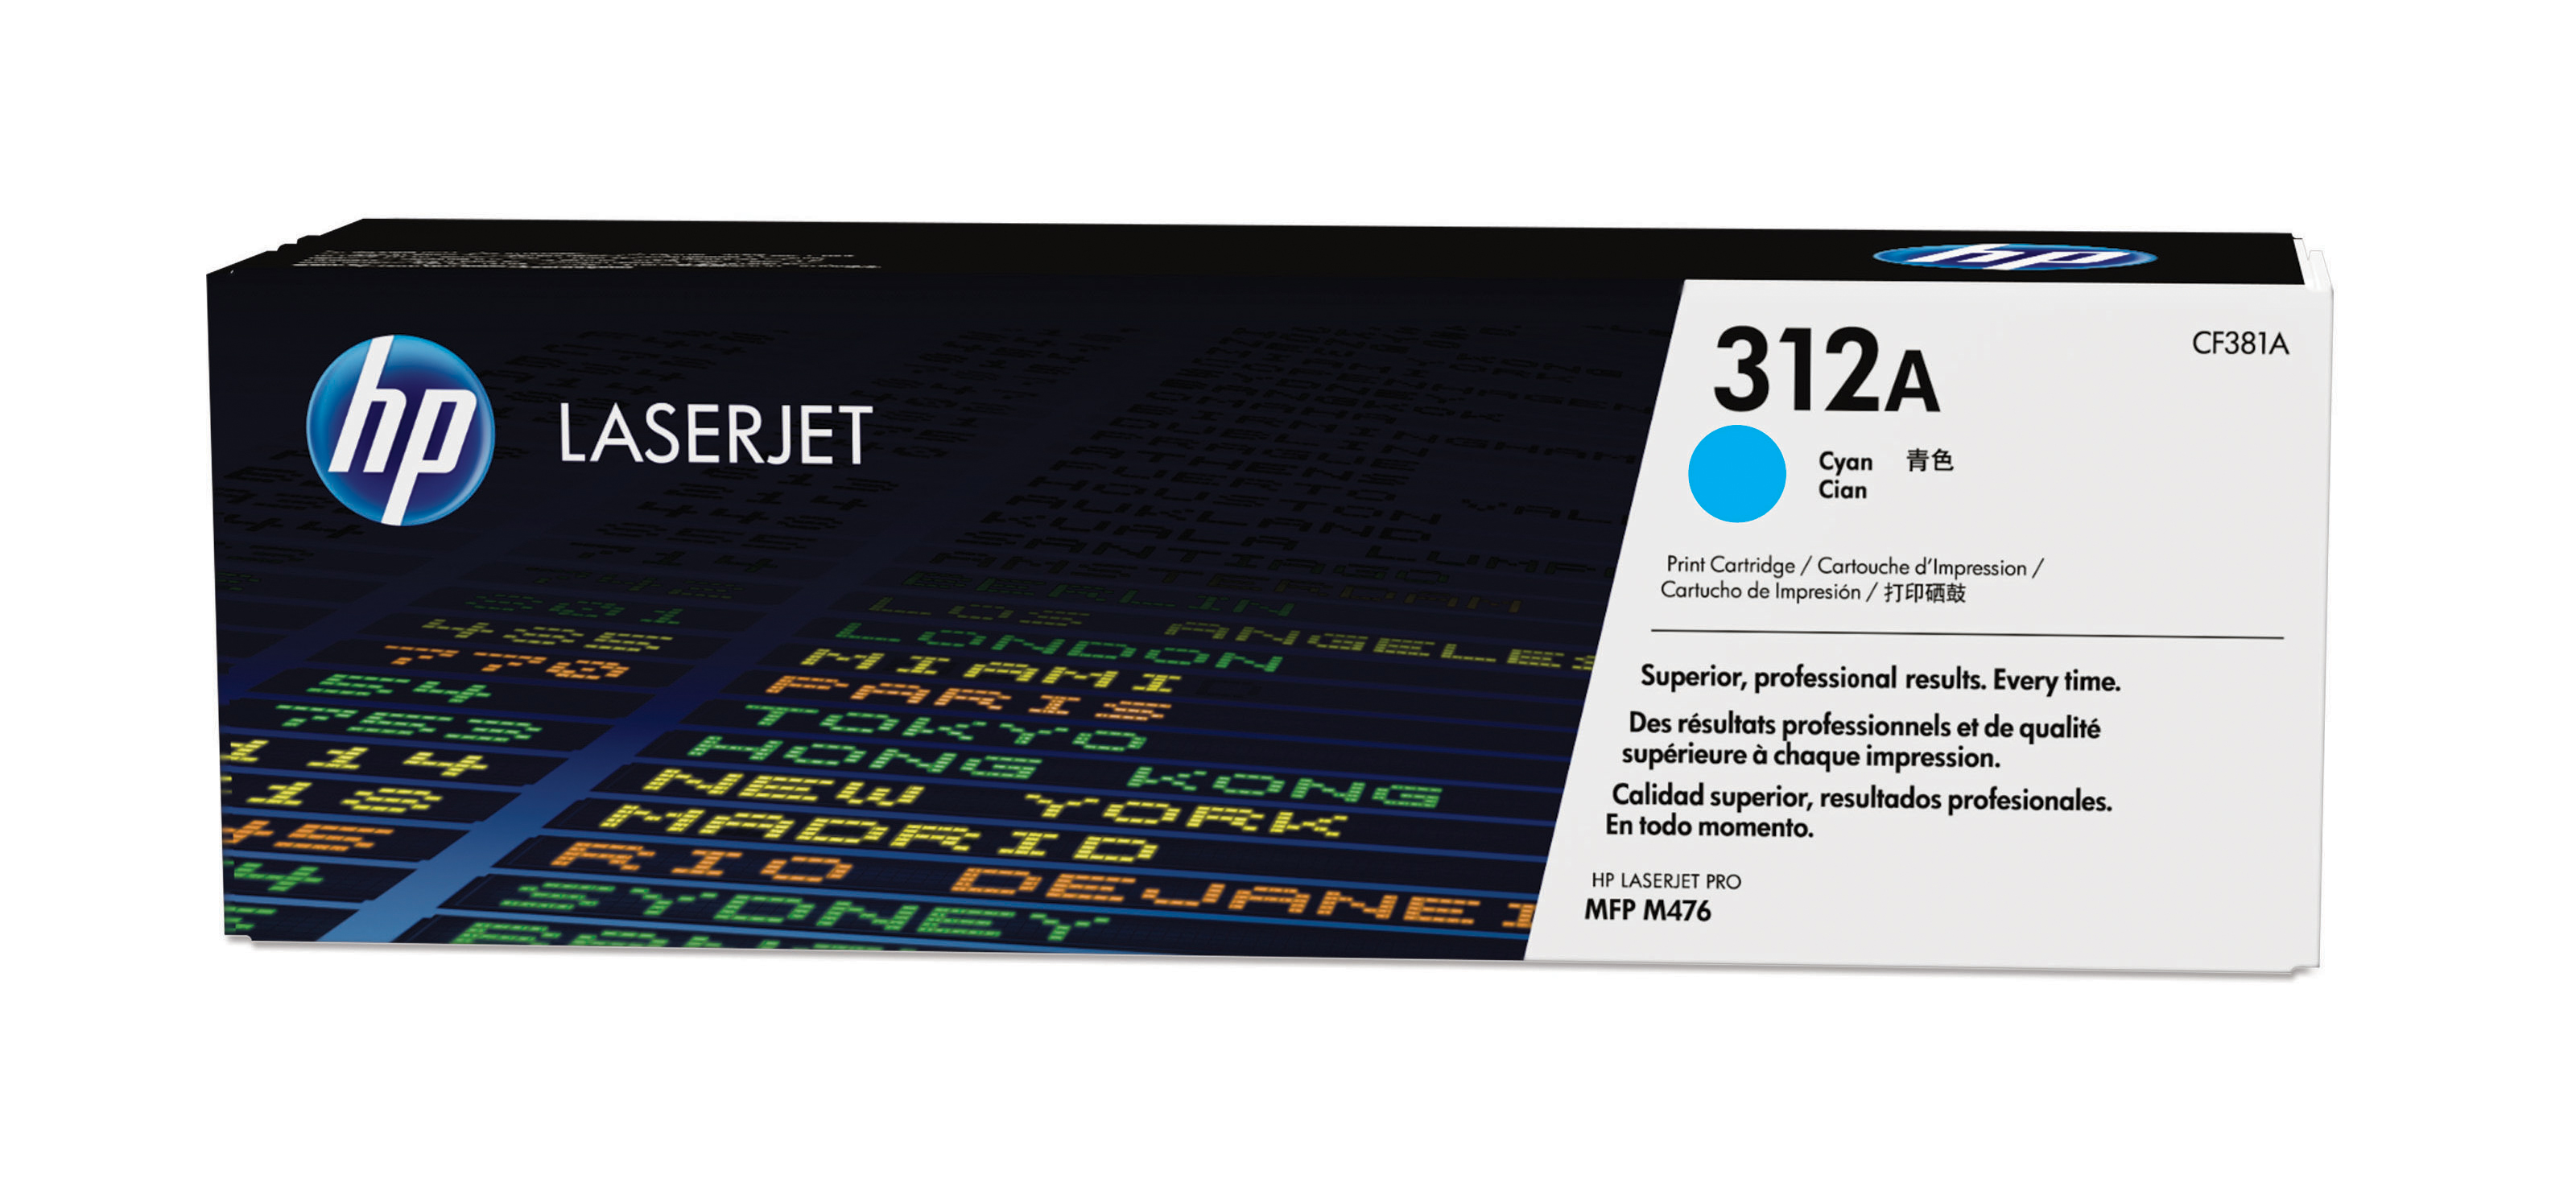 HP TONER CARTRIDGE LASERJET 312A CYAN M476